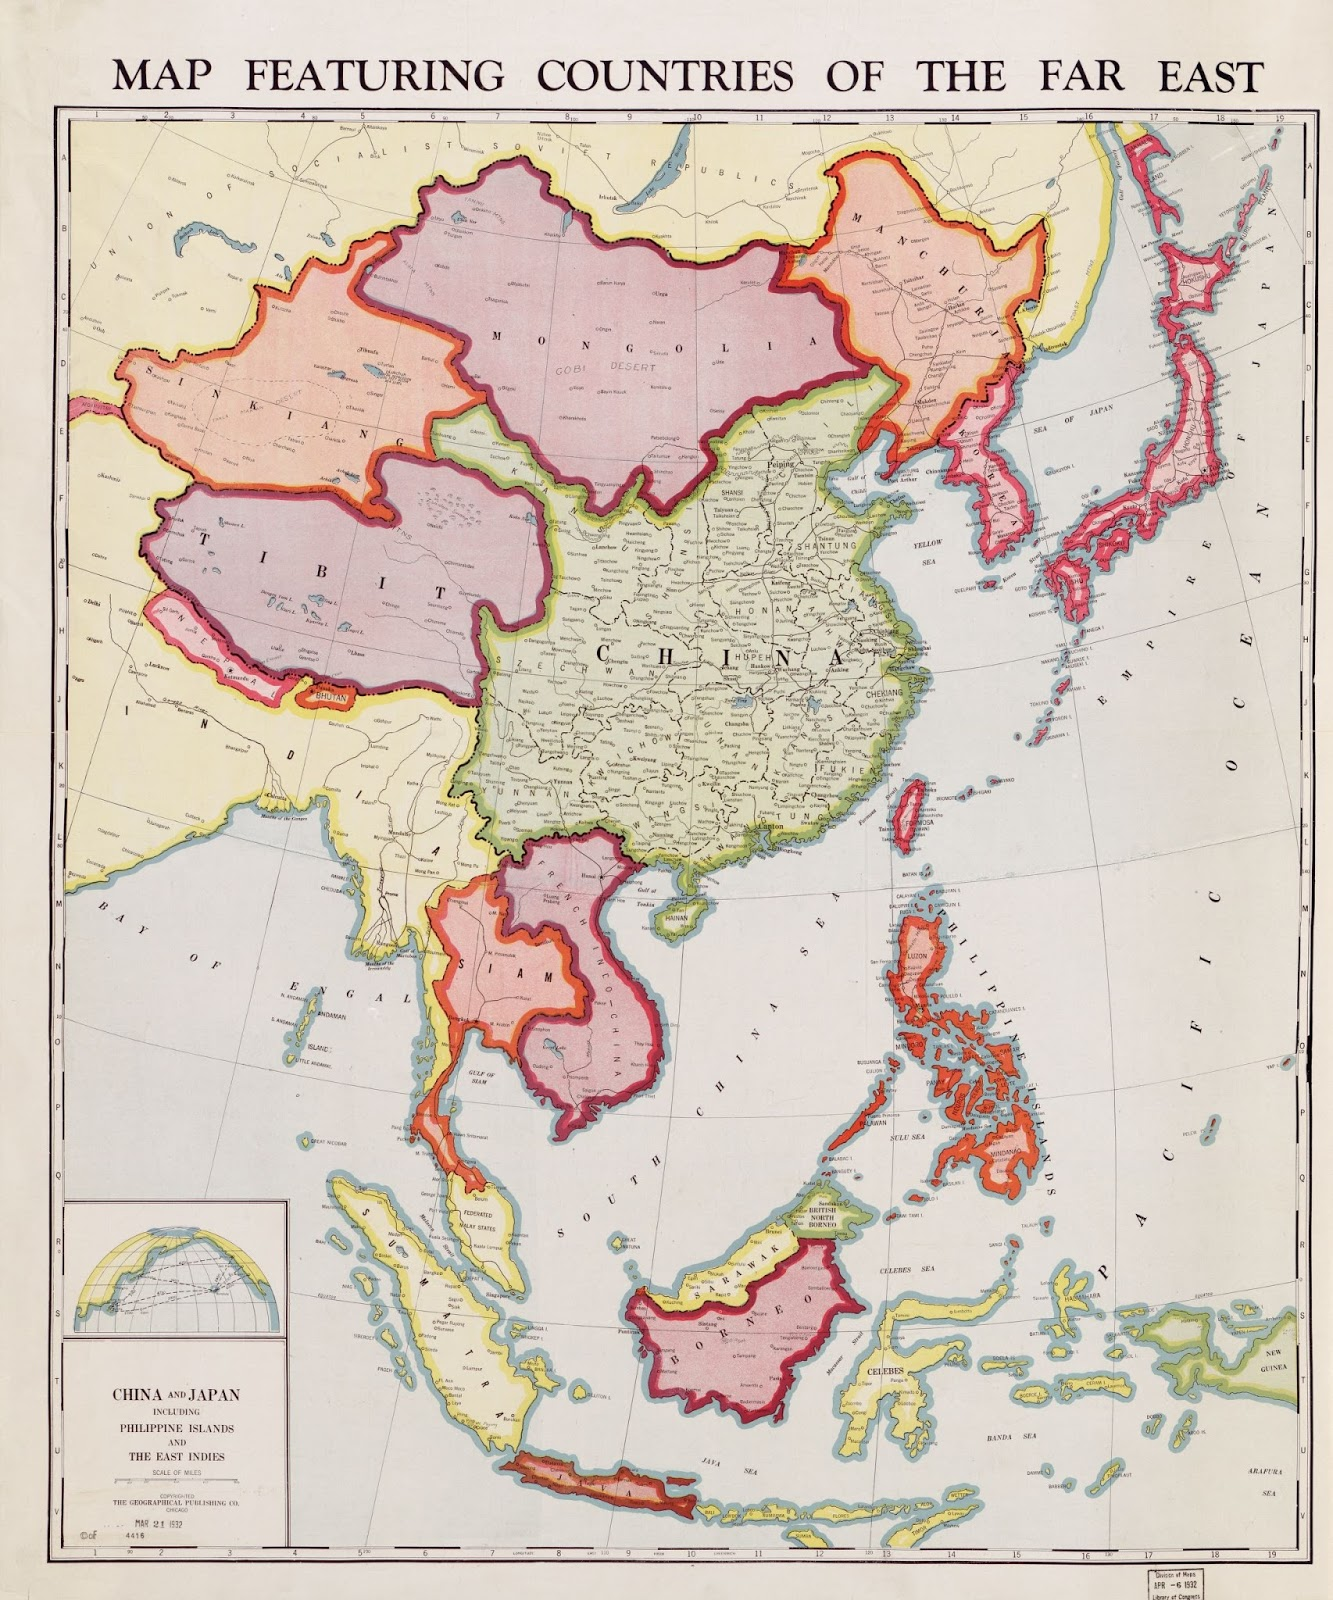 Map featuring countries of the far East (1932)